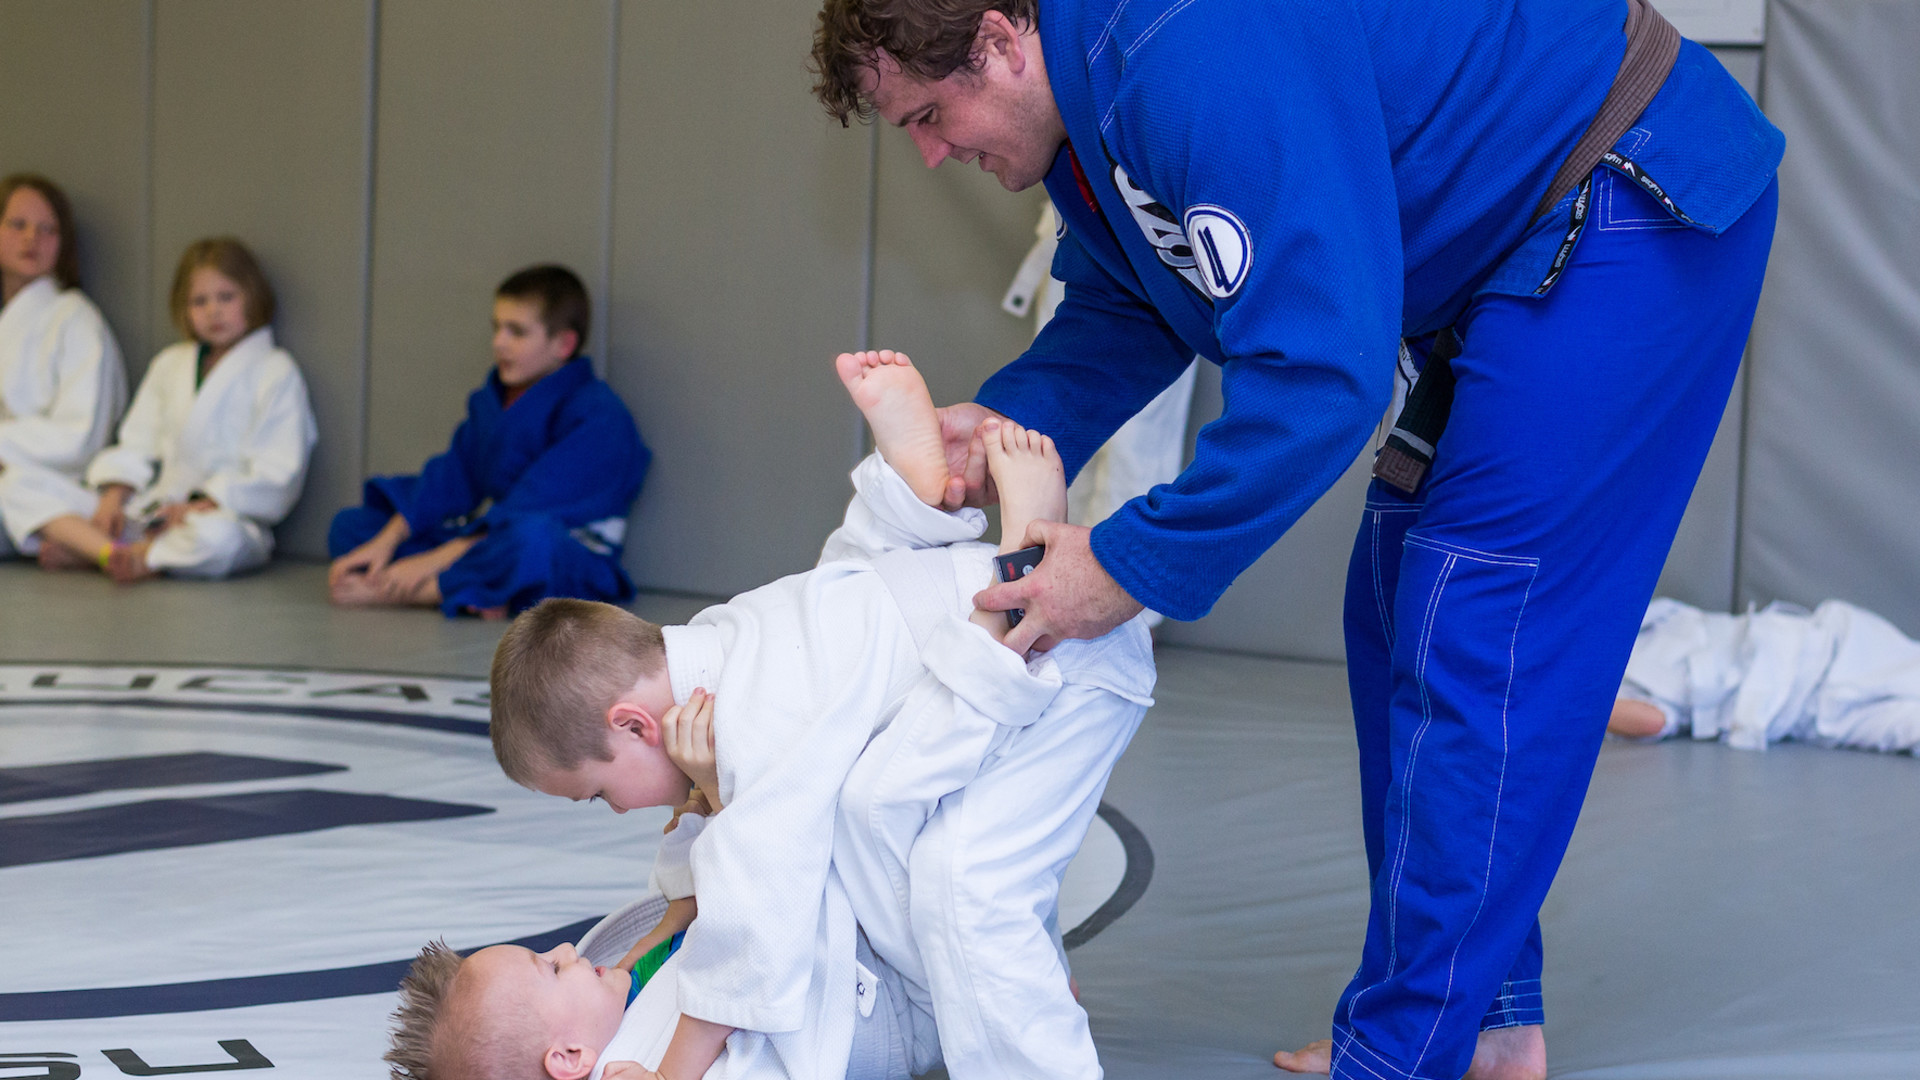 "<style> v {   text-shadow: 2px 2px 8px #1e2a55; } </style><v style=""color:white""><strong>Kids Martial Arts 